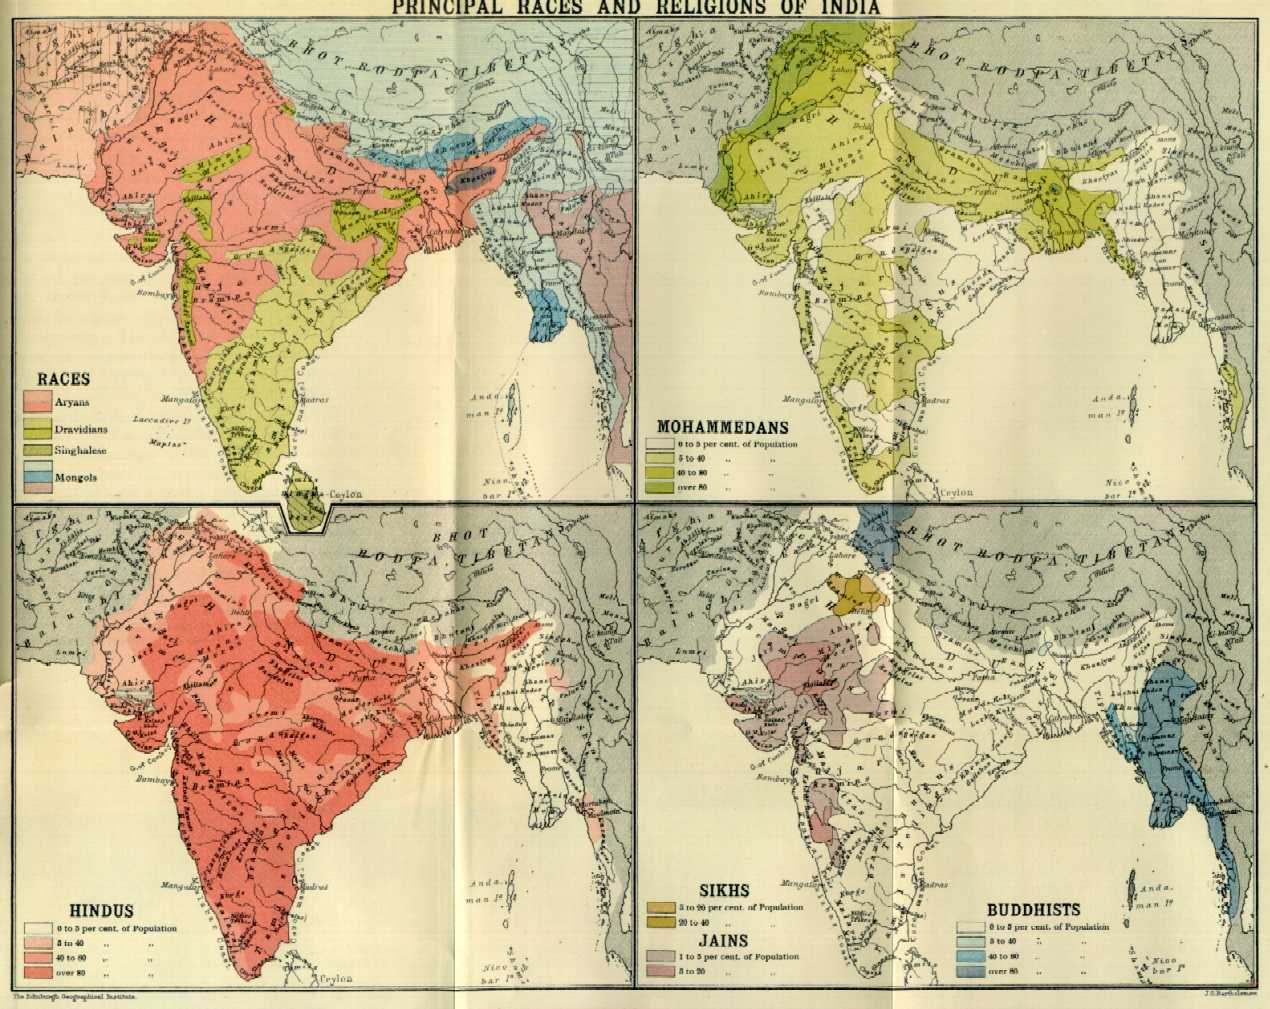 an analysis of the religions in india The role of religion in the middle east the three states that will be examined in this paper are israel, iran, and iraq: a jewish state, a non-arab muslim state, and an arab muslim state.